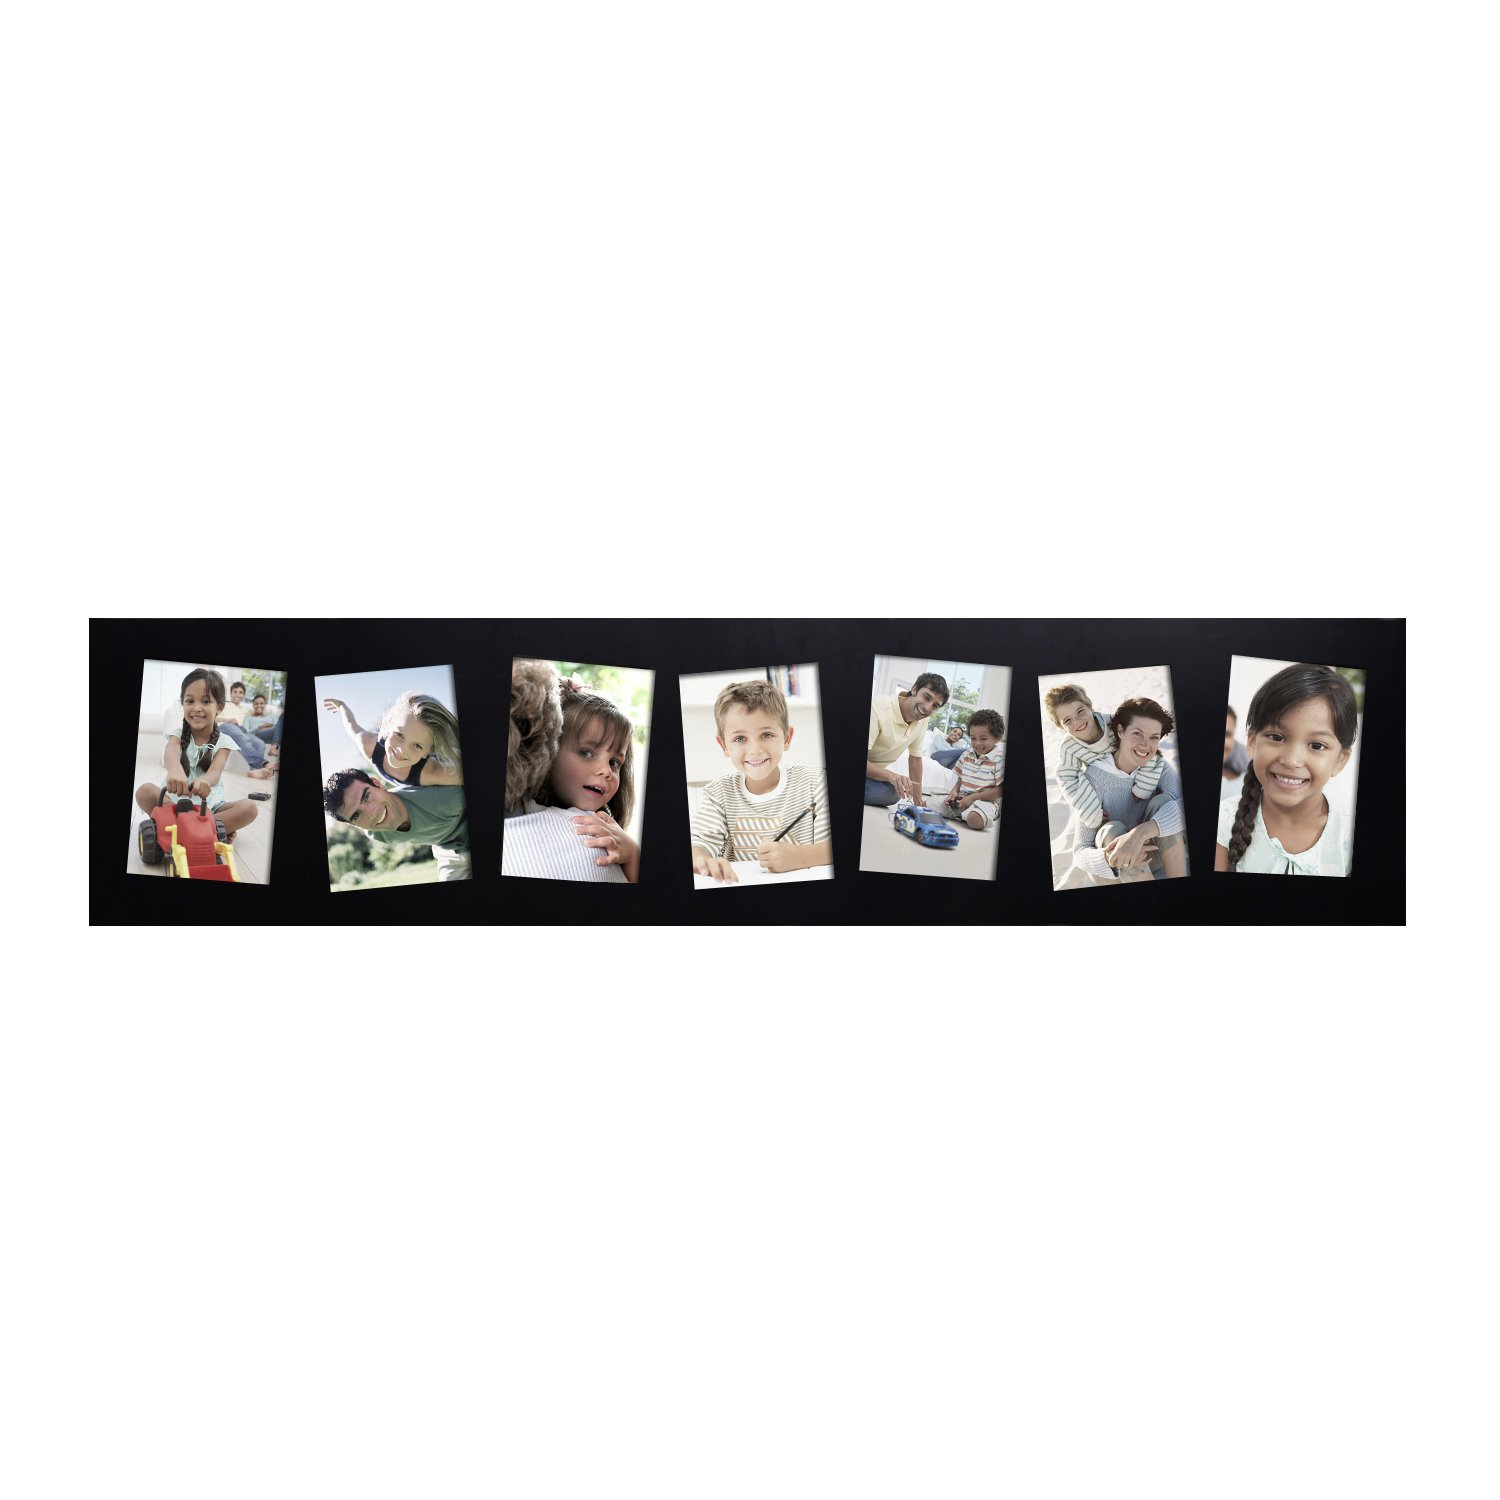 Adeco 7 Openings Black Wood Wall hanging Collage Picture Photo Frame - Made to Display Seven 5x7 Photos